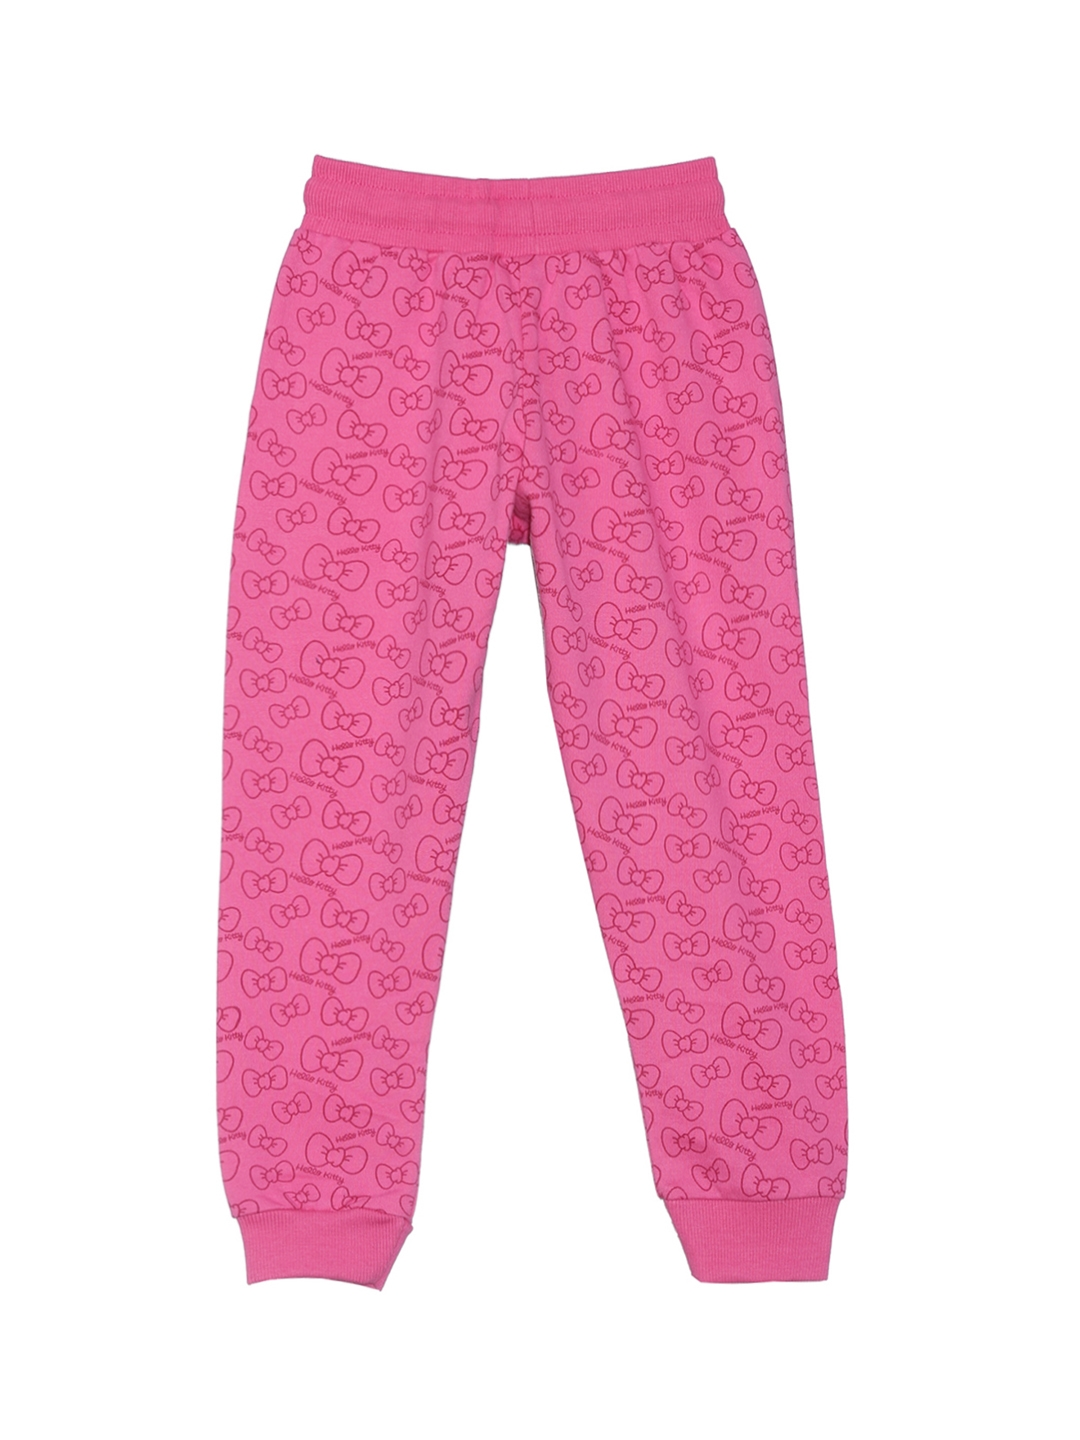 e81d28ce0 Buy Hello Kitty By Kidsville Girls Pink Joggers - Track Pants for ...